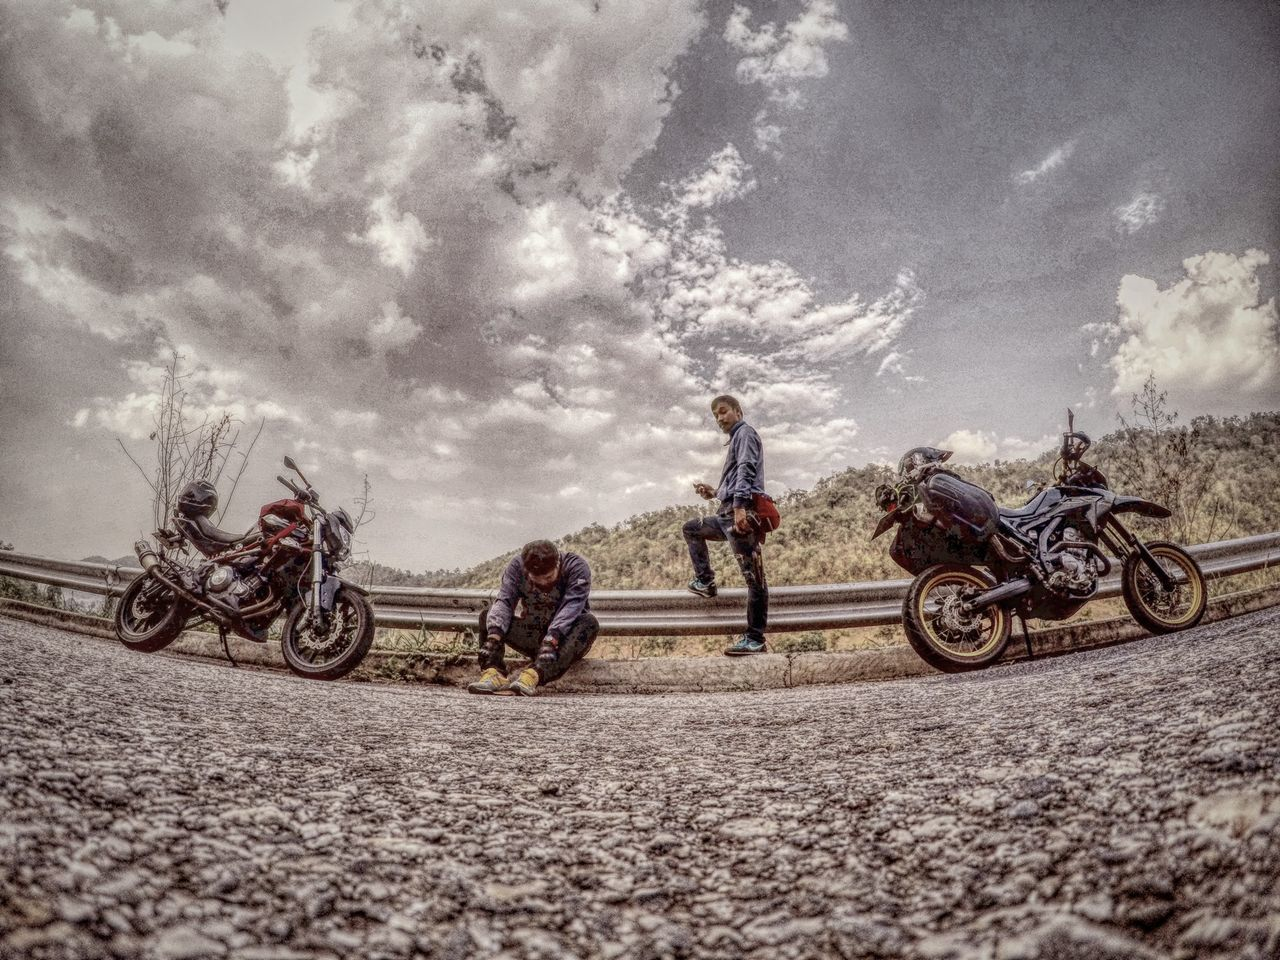 transportation, land vehicle, motorcycle, cloud - sky, men, riding, real people, mode of transport, day, sky, outdoors, adventure, road, helmet, motorsport, togetherness, sitting, motocross, sports race, extreme sports, biker, adult, people